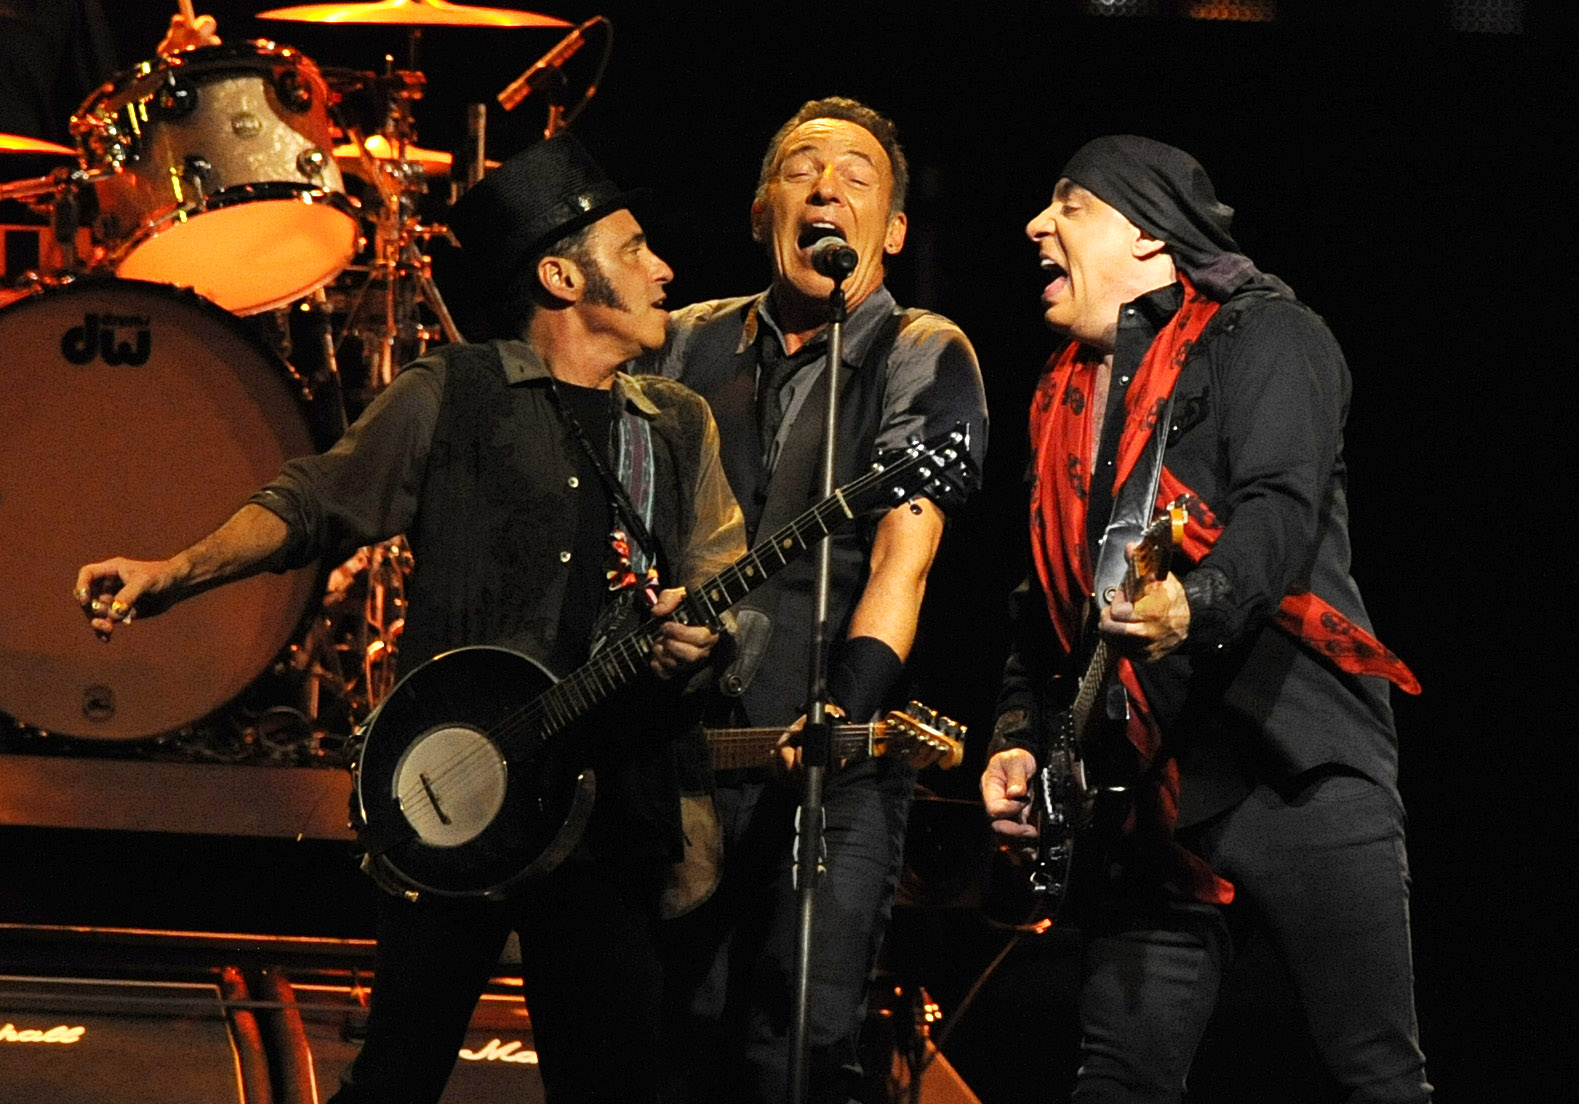 Bruce Springsteen, Louis C.K. to Headline 'Stand Up for Heroes' Benefit